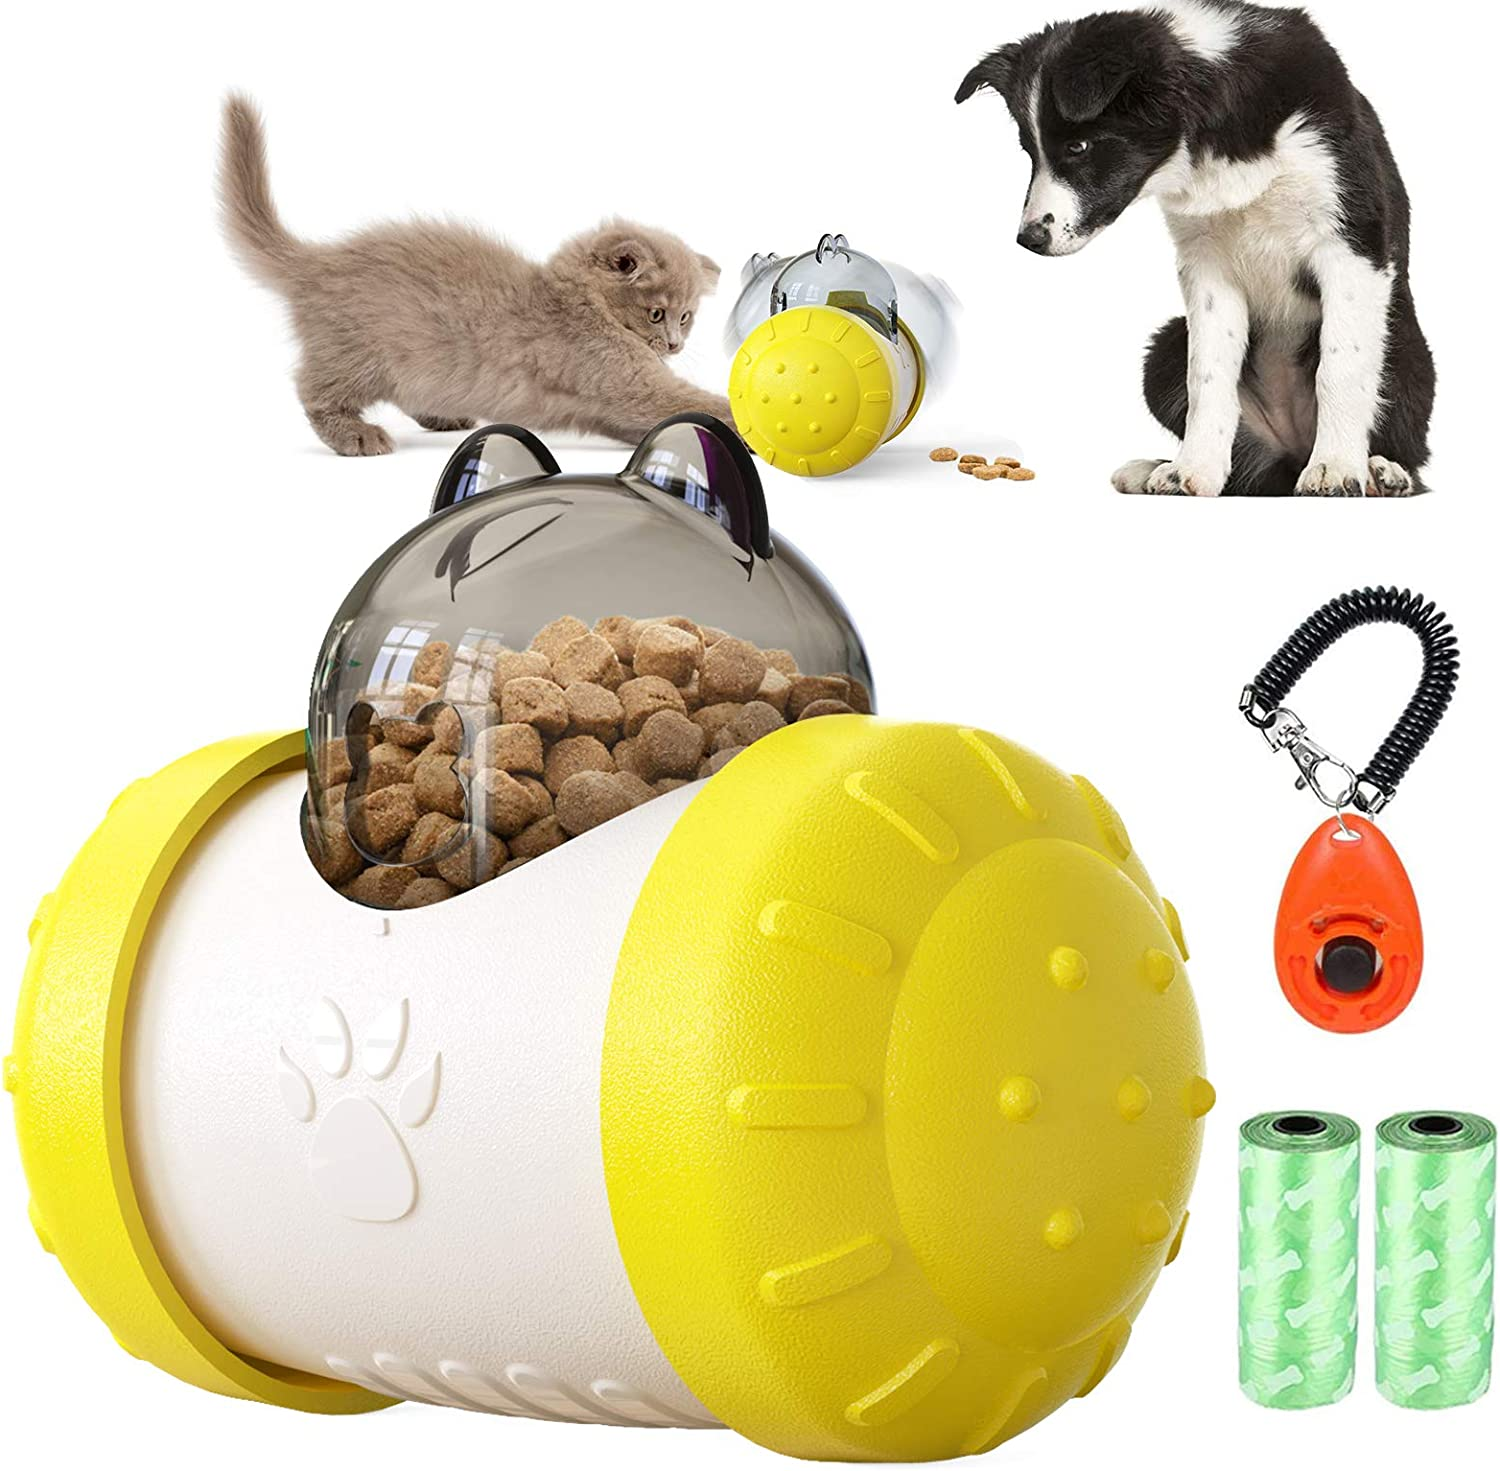 Dog Slow Feeder Training Ball Interactive Toys Pet Food ball Tumbler Treat Educational Toy Increases IQ Mental Stimulation Training Games Food Dispensing Supplies for Puppy Small to Medium Cats Dogs